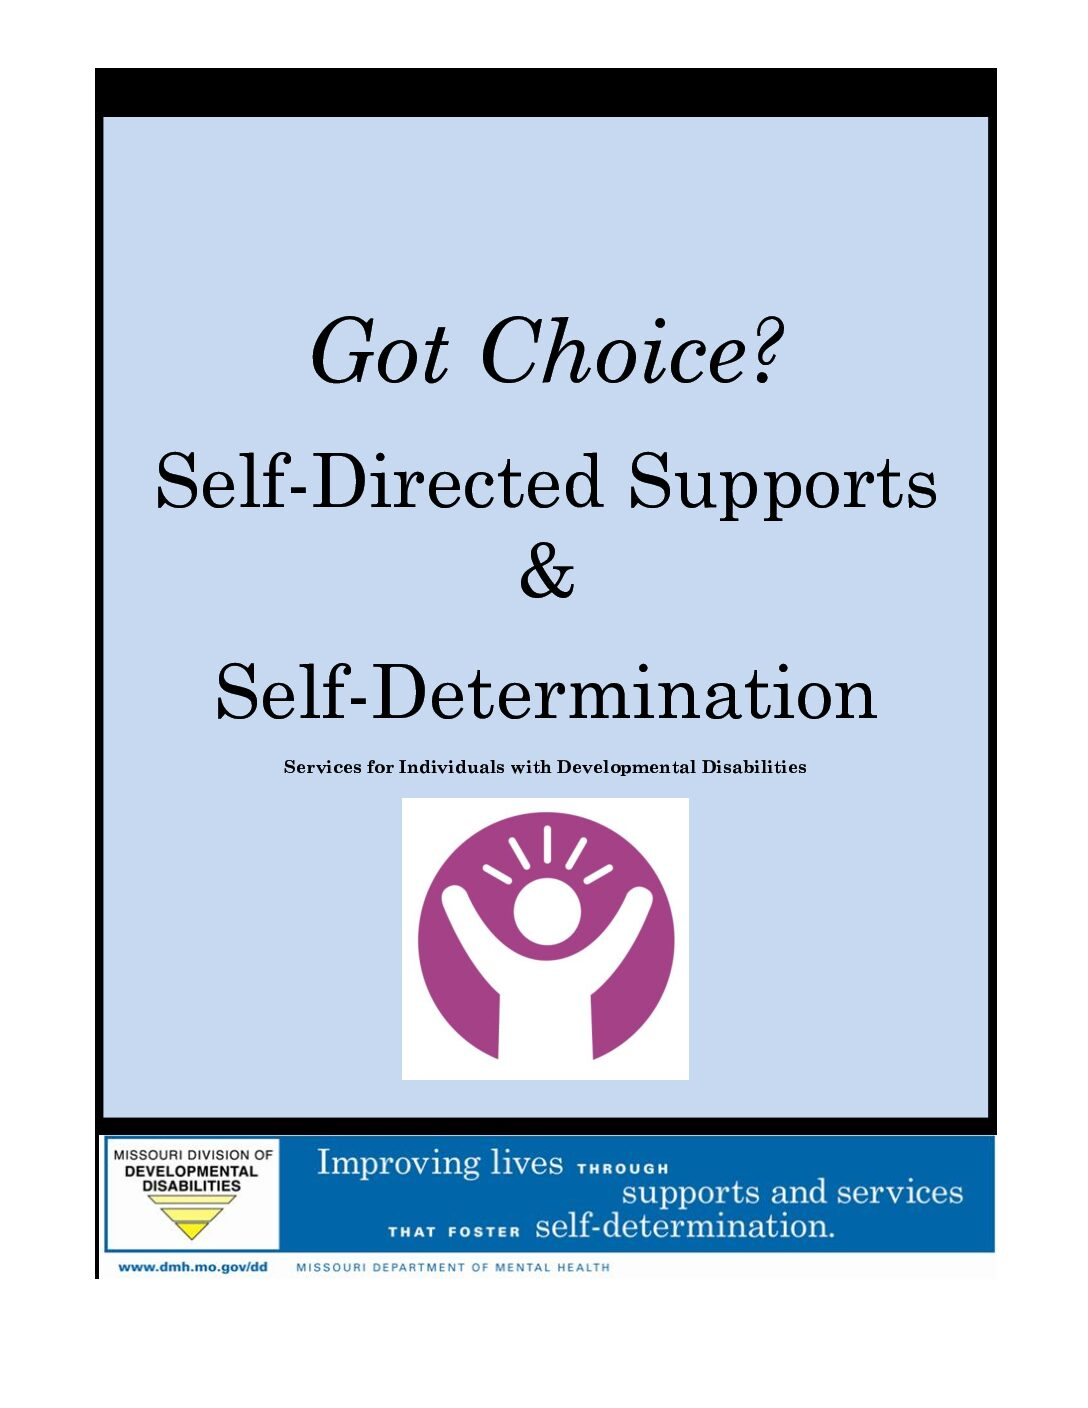 Got Choice? Self-Directed Supports & Self-Determination Services for Individuals with Developmental Disabilities